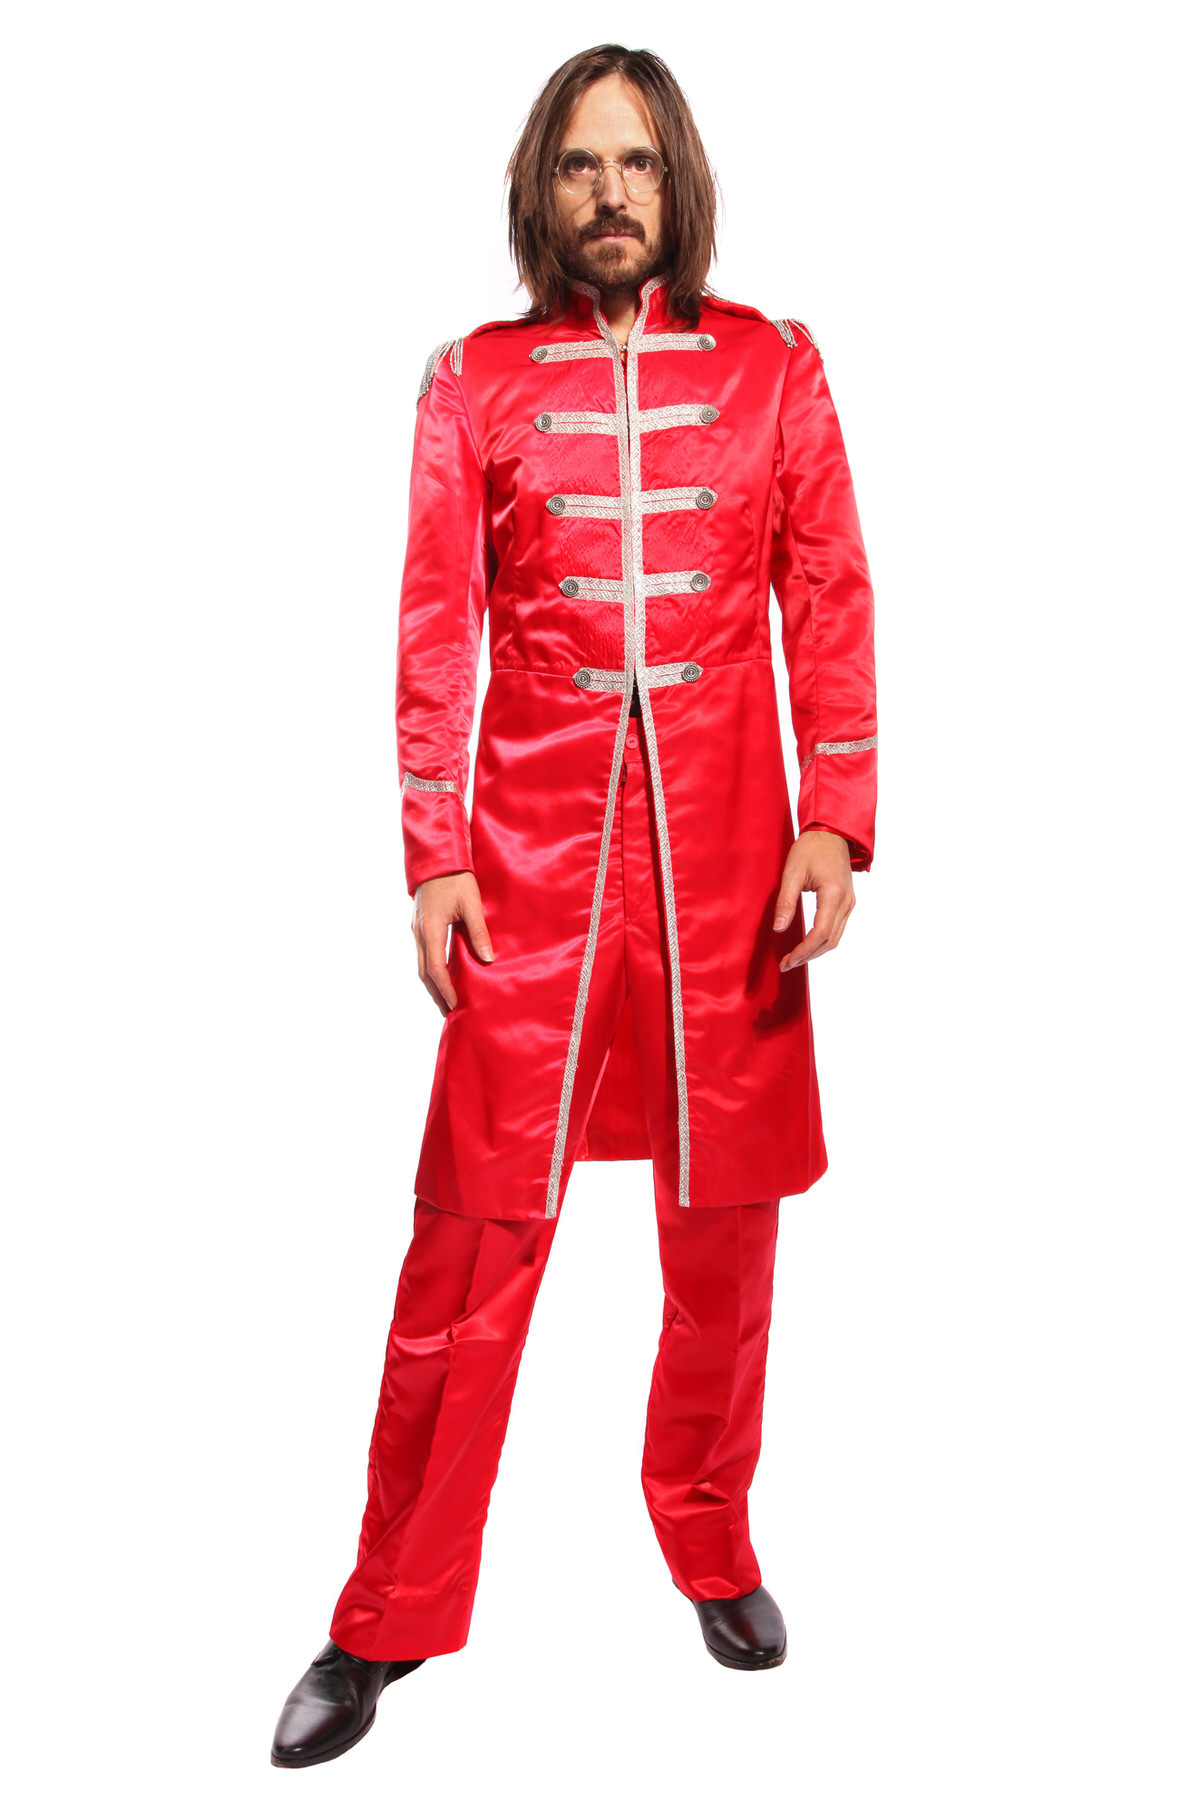 RED SERGEANT PEPPER COSTUME W JACKET & TROUSERS